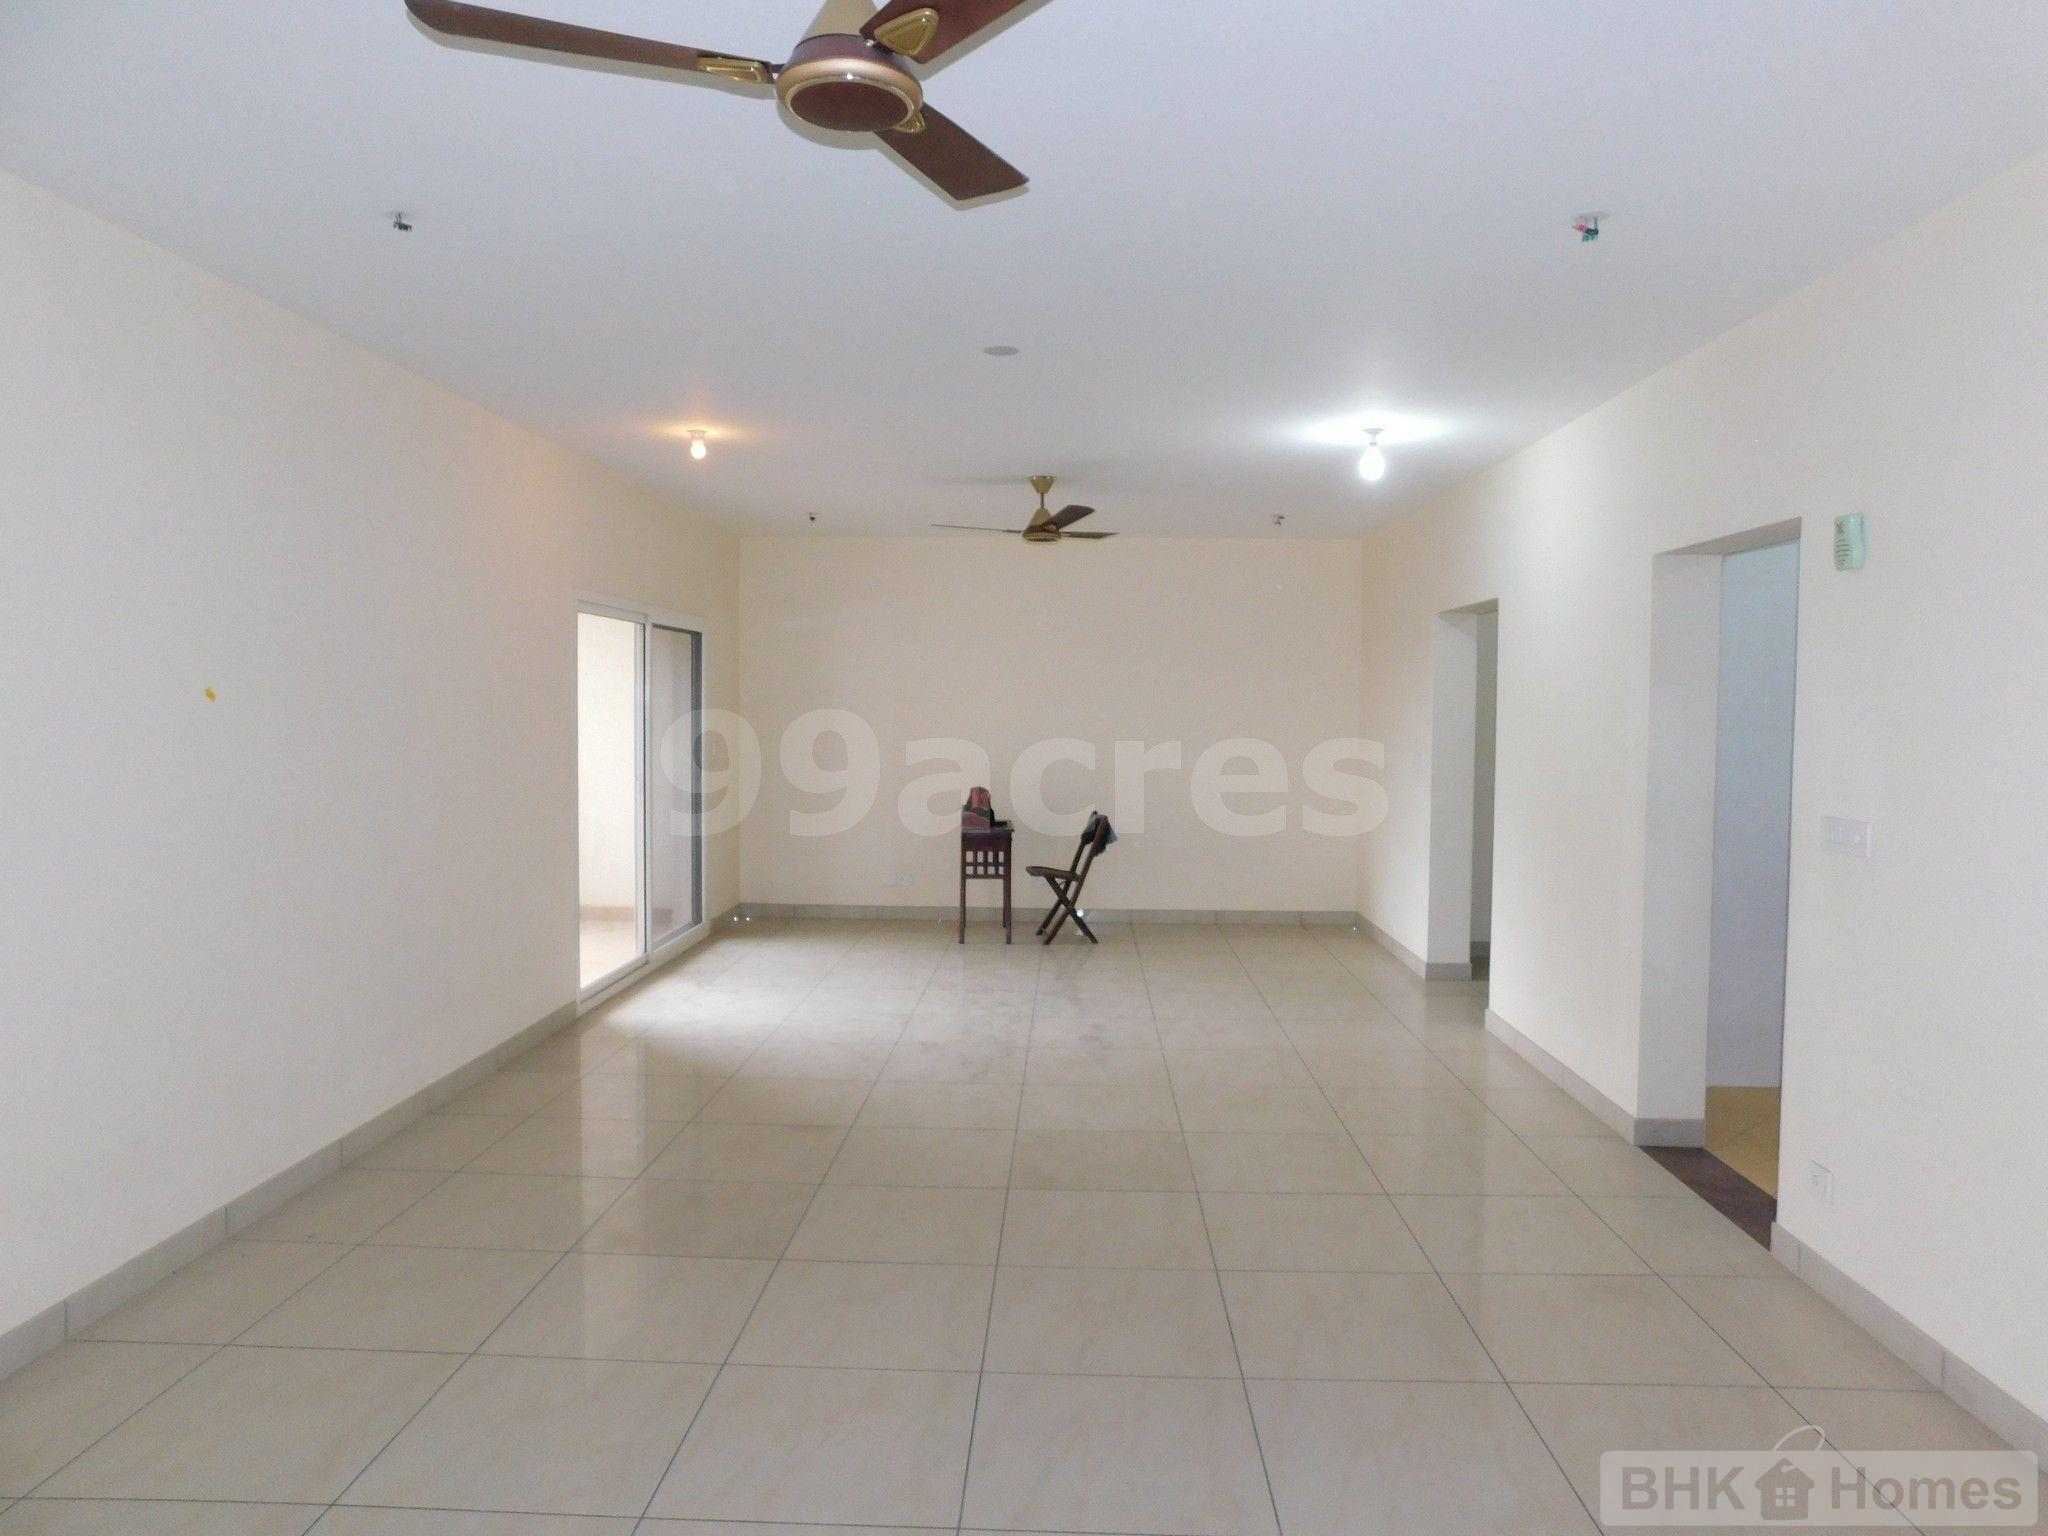 3 BHK Apartment for Sale in  Kanakpura Road